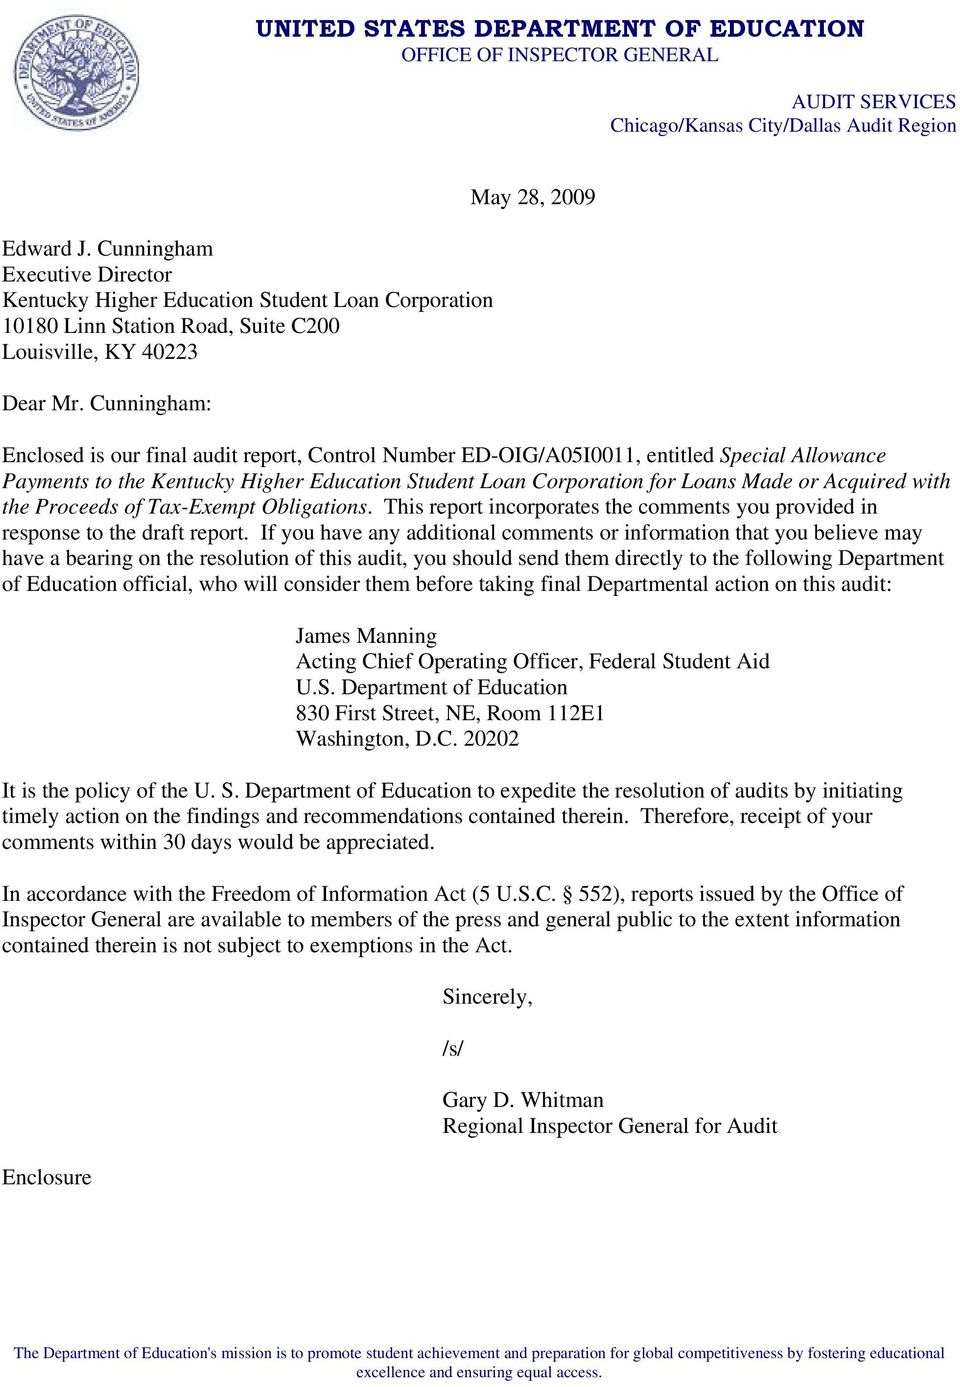 Cunningham: May 28, 2009 Enclosed is our final audit report, Control Number ED-OIG/A05I0011, entitled Special Allowance Payments to the Kentucky Higher Education Student Loan Corporation for Loans